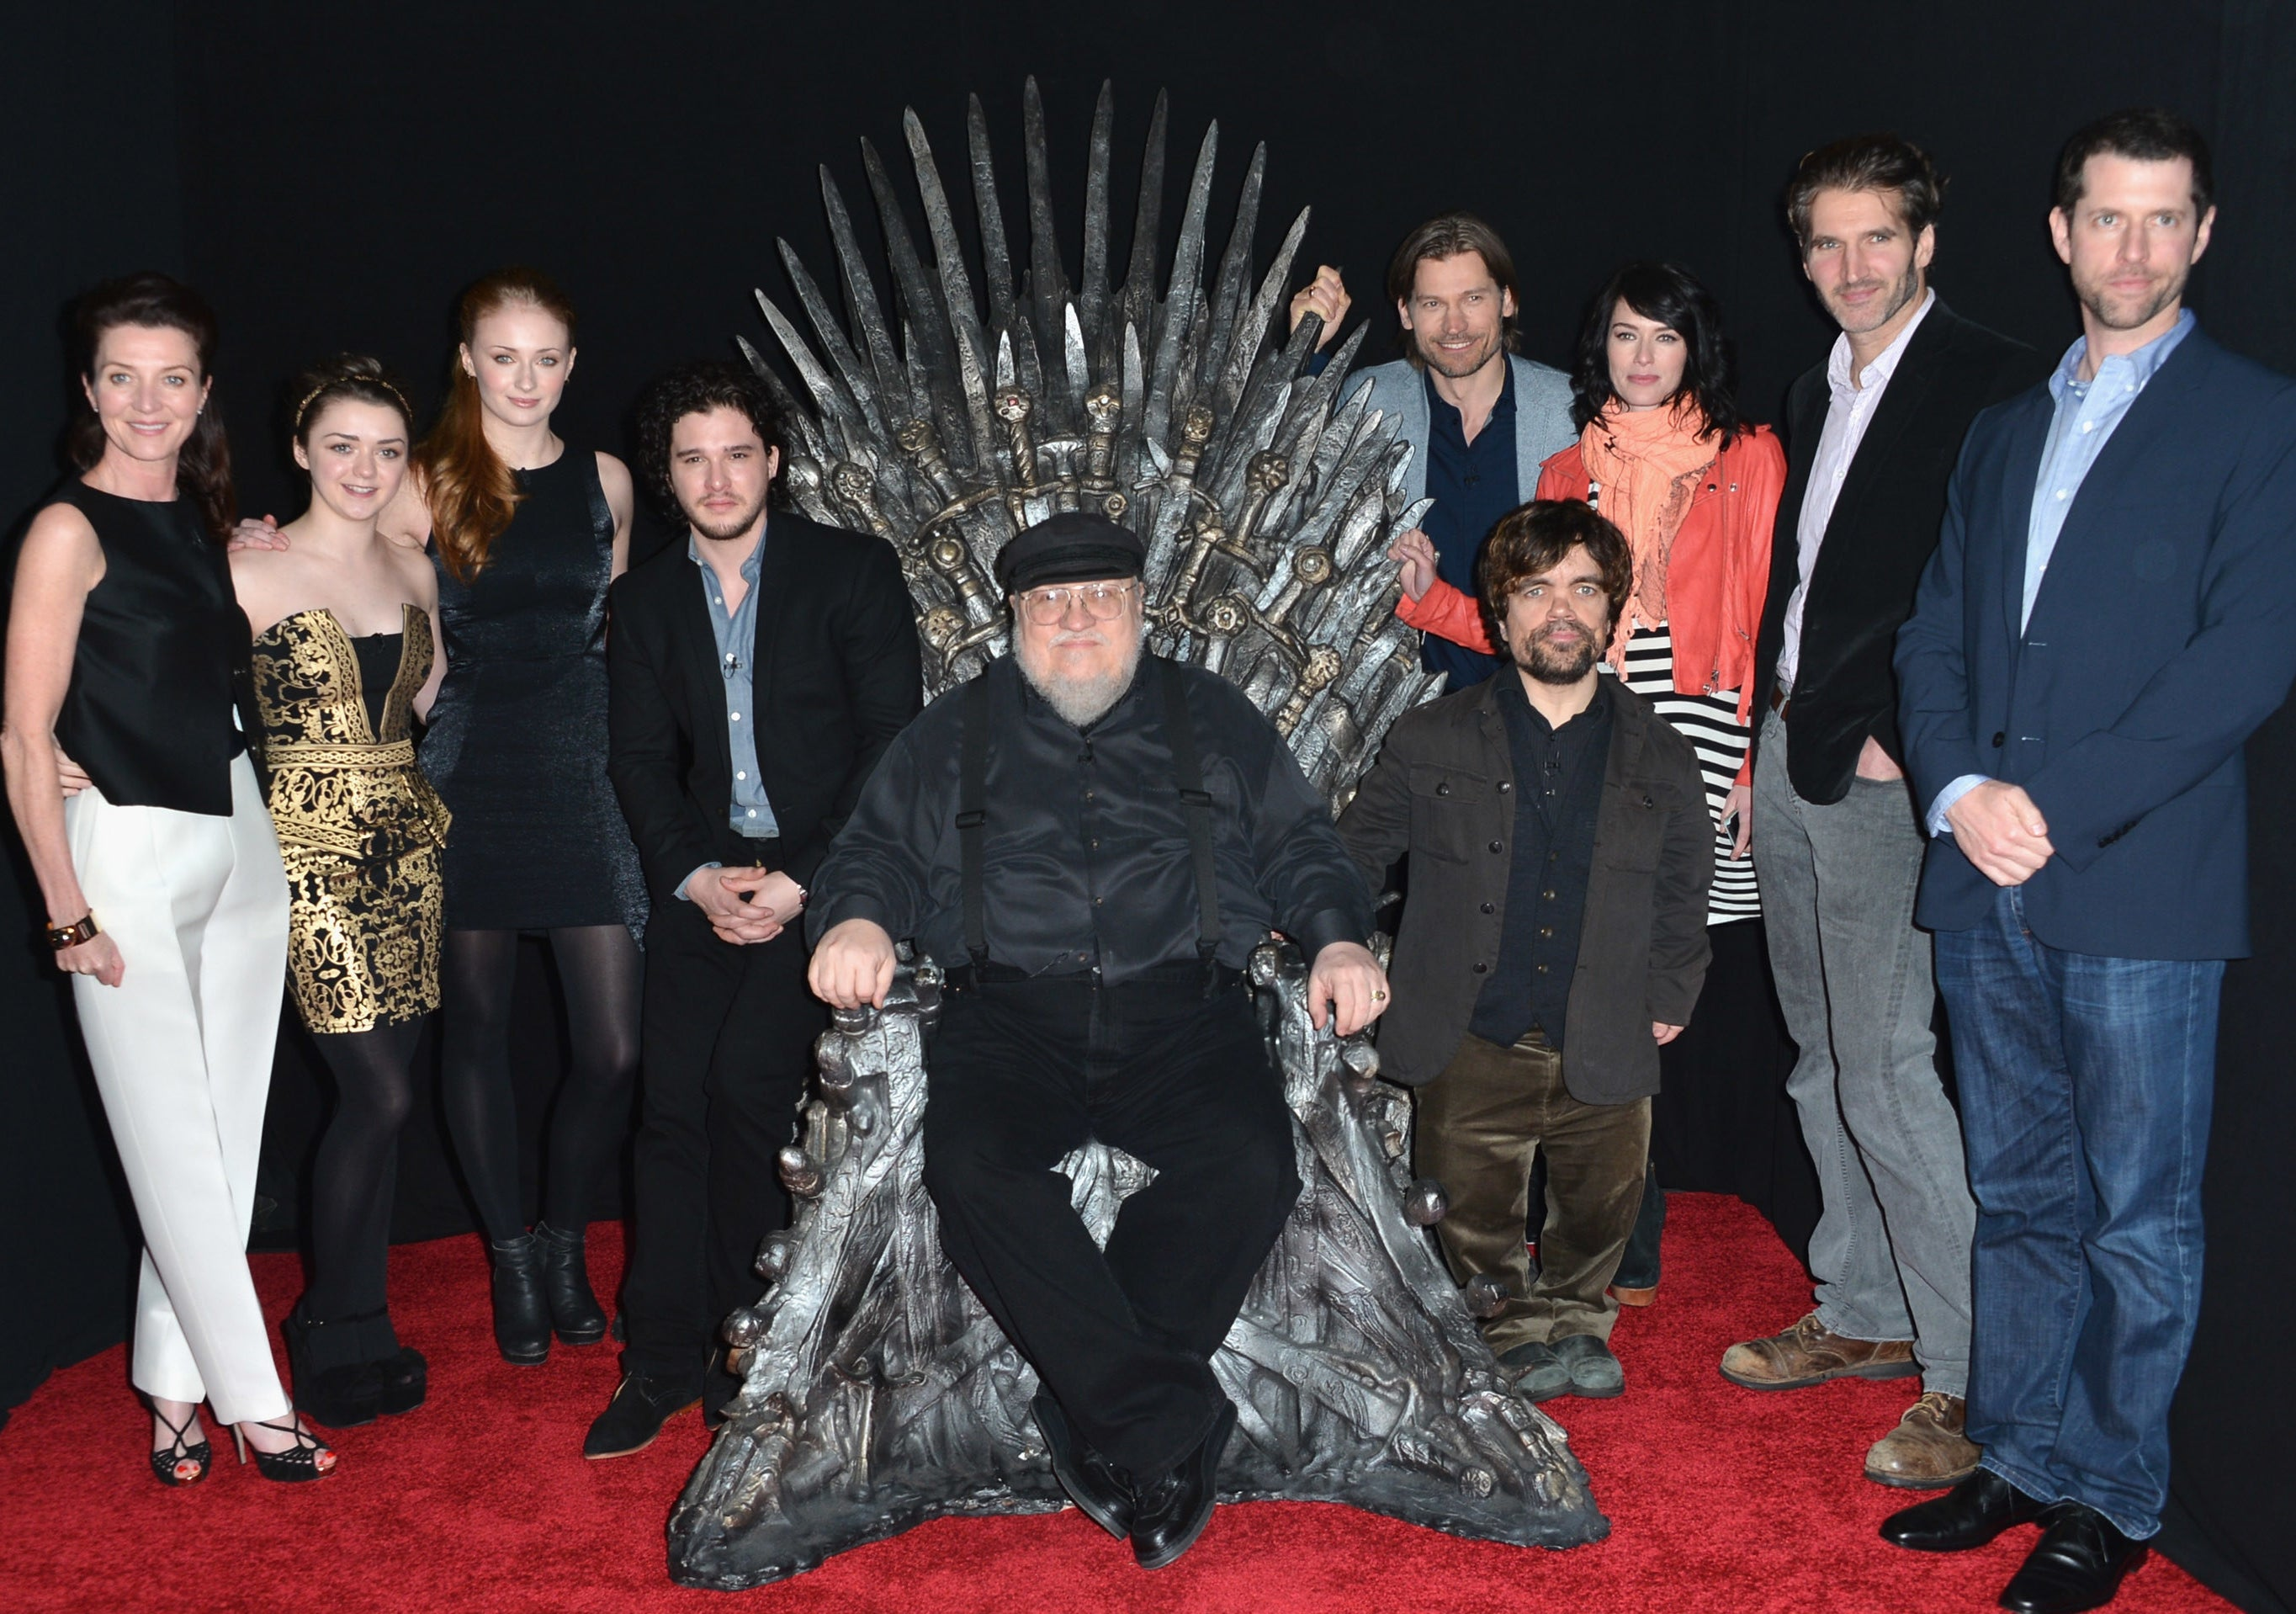 George sits on the throne while surrounded by the show's cast